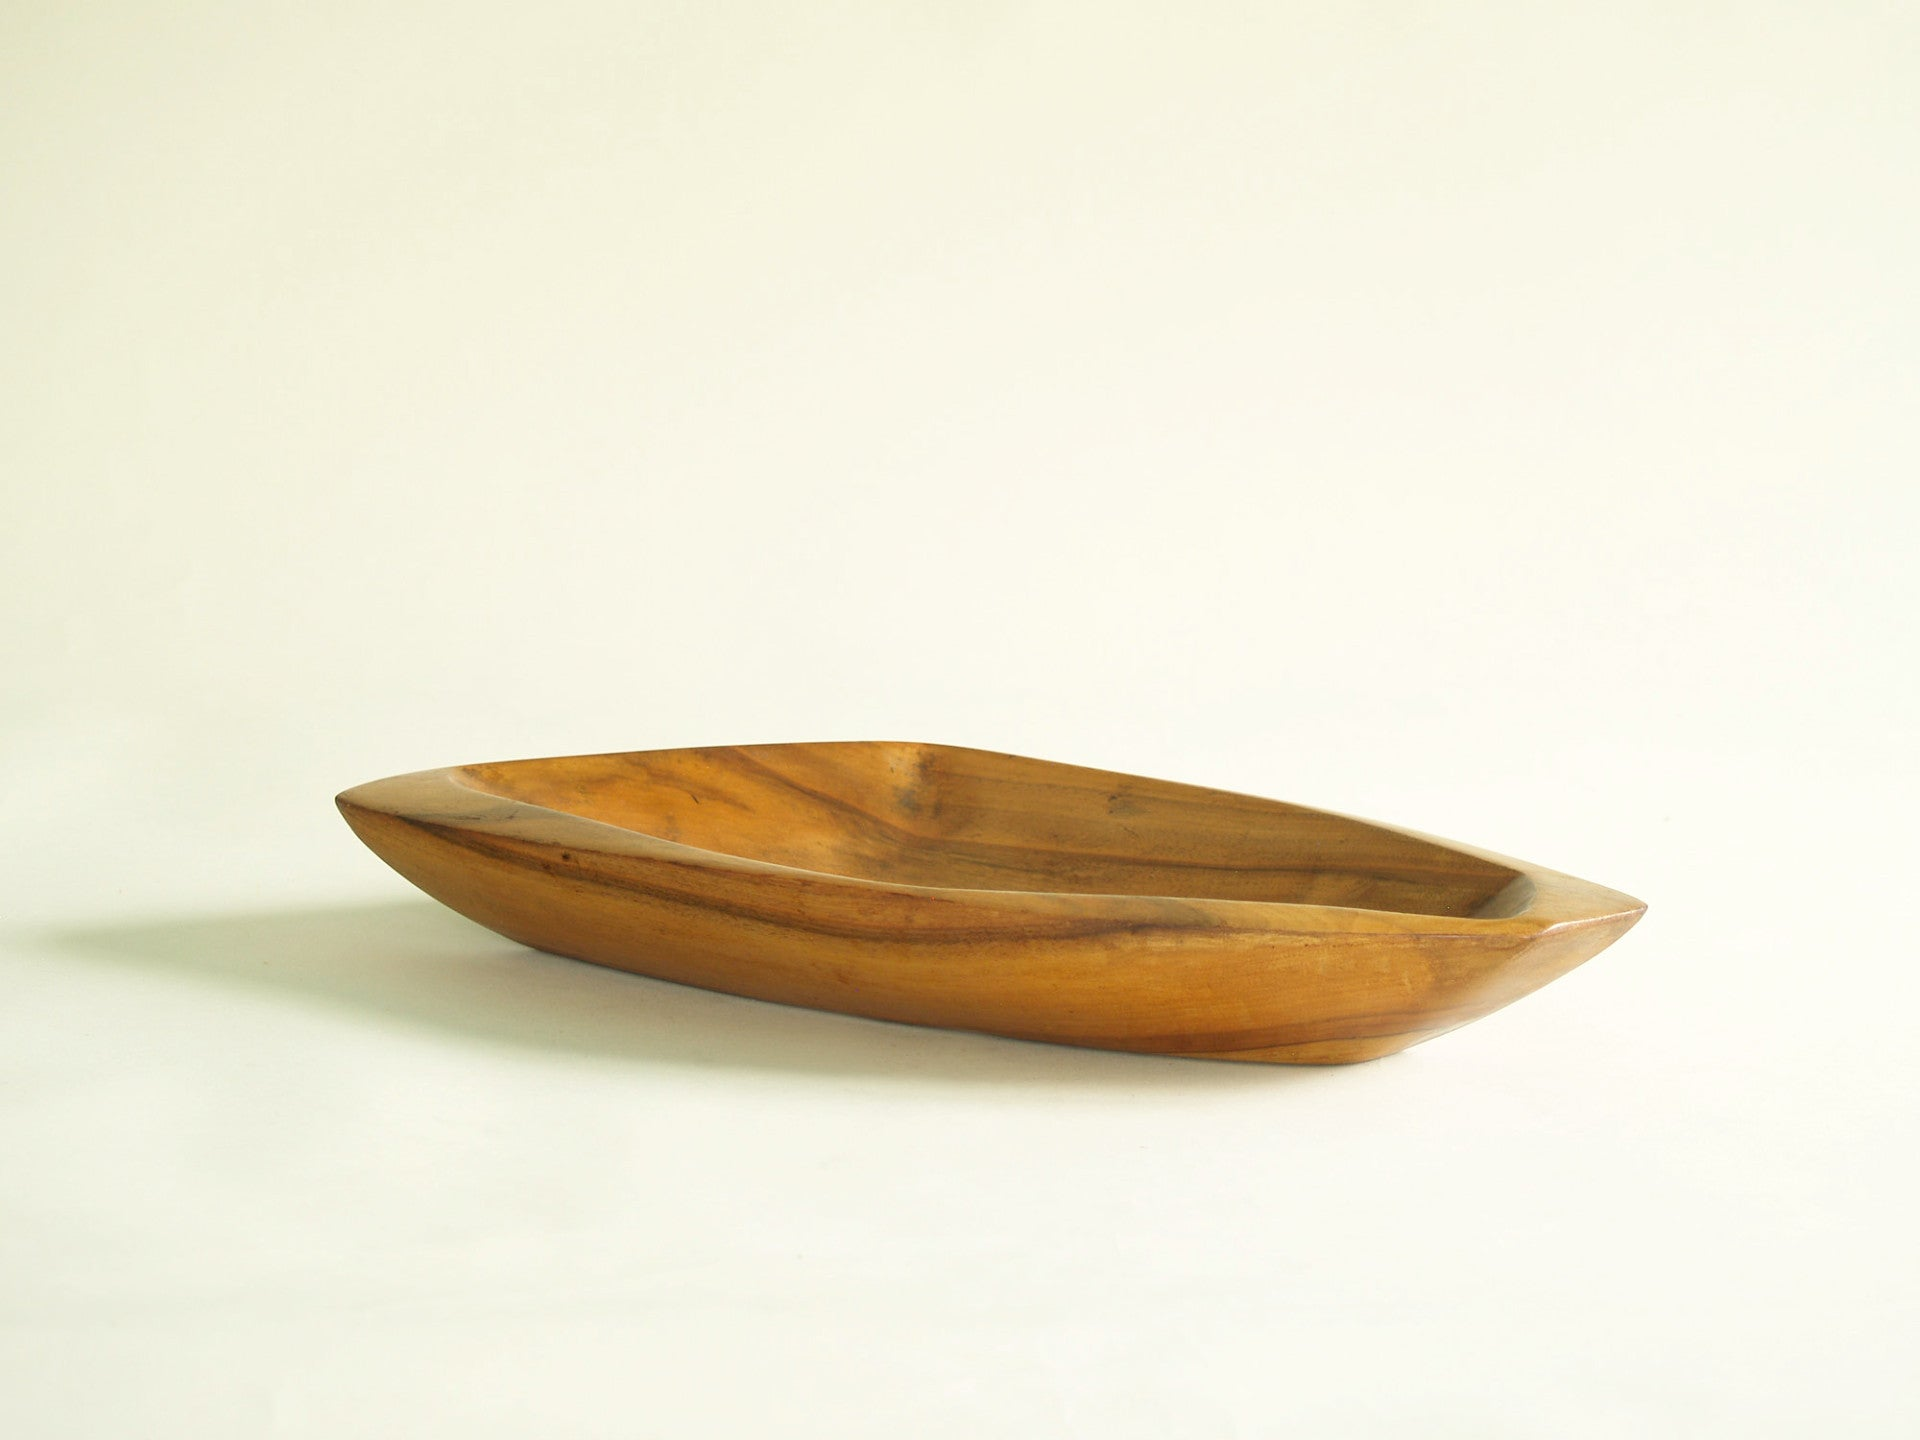 Rare coupe monoxyle de forme libre en sycomore, France (vers 1955)..Rare sycamore freeform carved bowl, France (circa 1955)